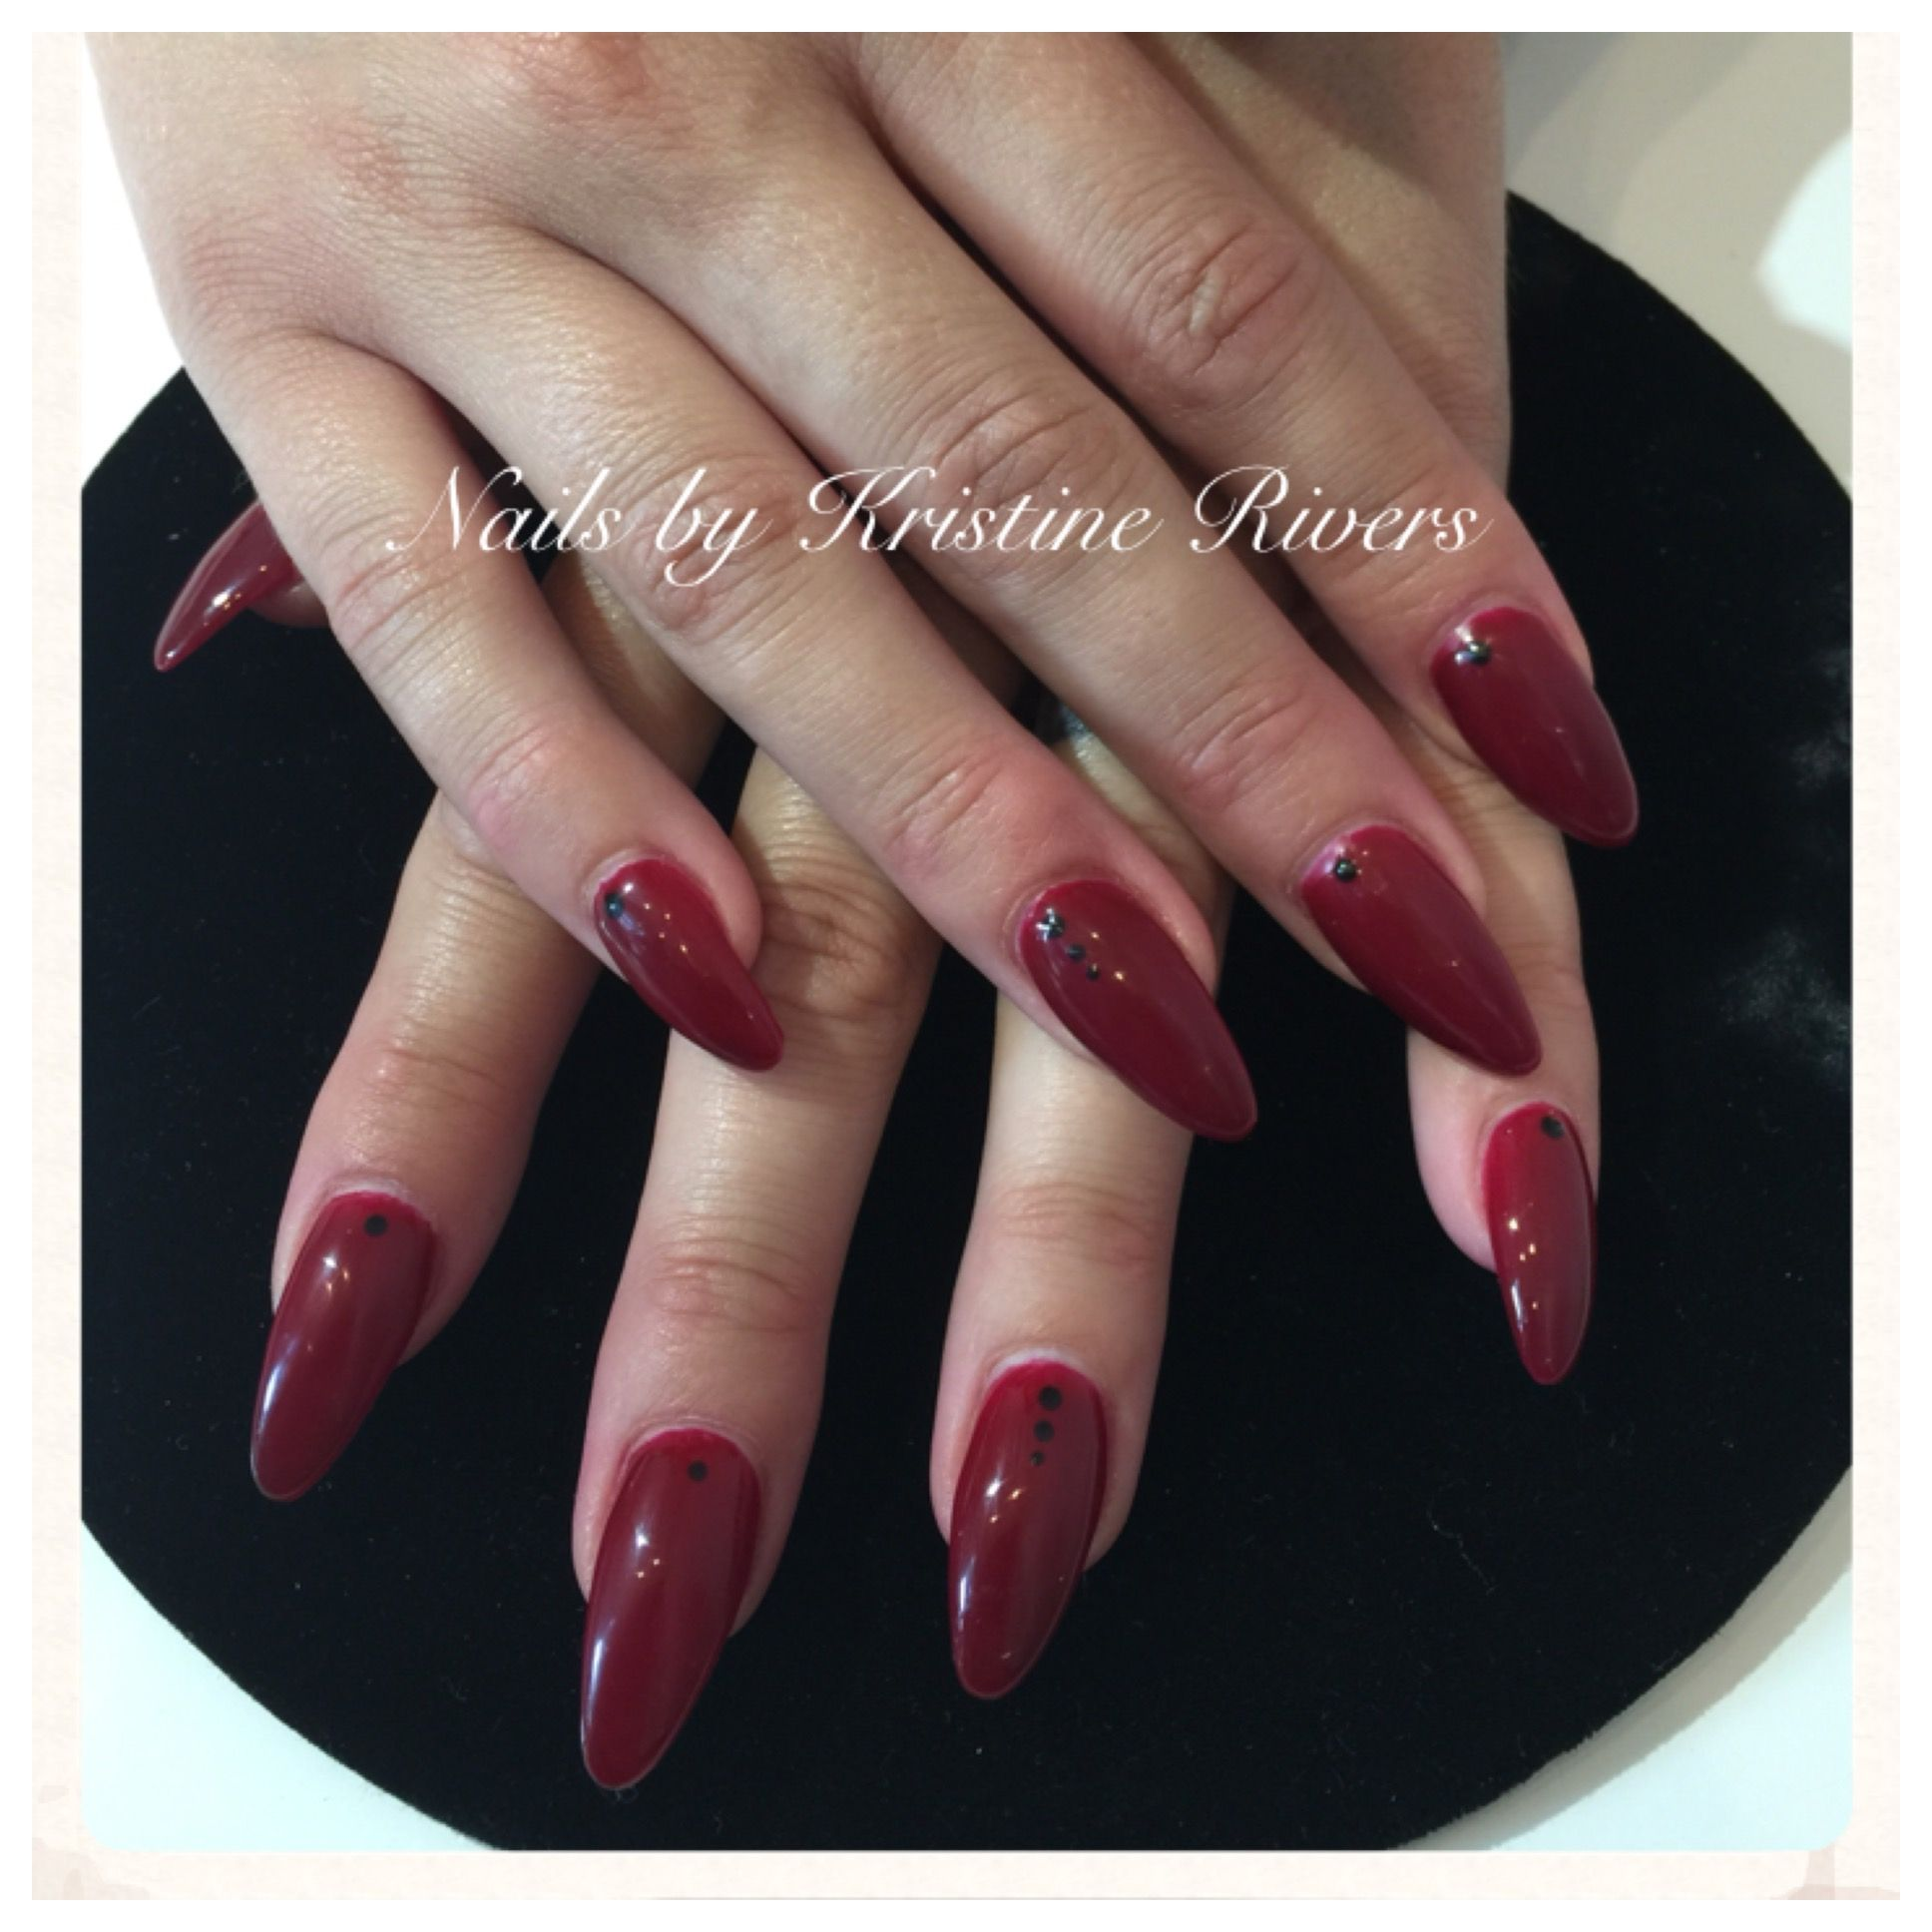 Pin by Kristine Rivers on Nails by Kristine Rivers   Pinterest   Red ...